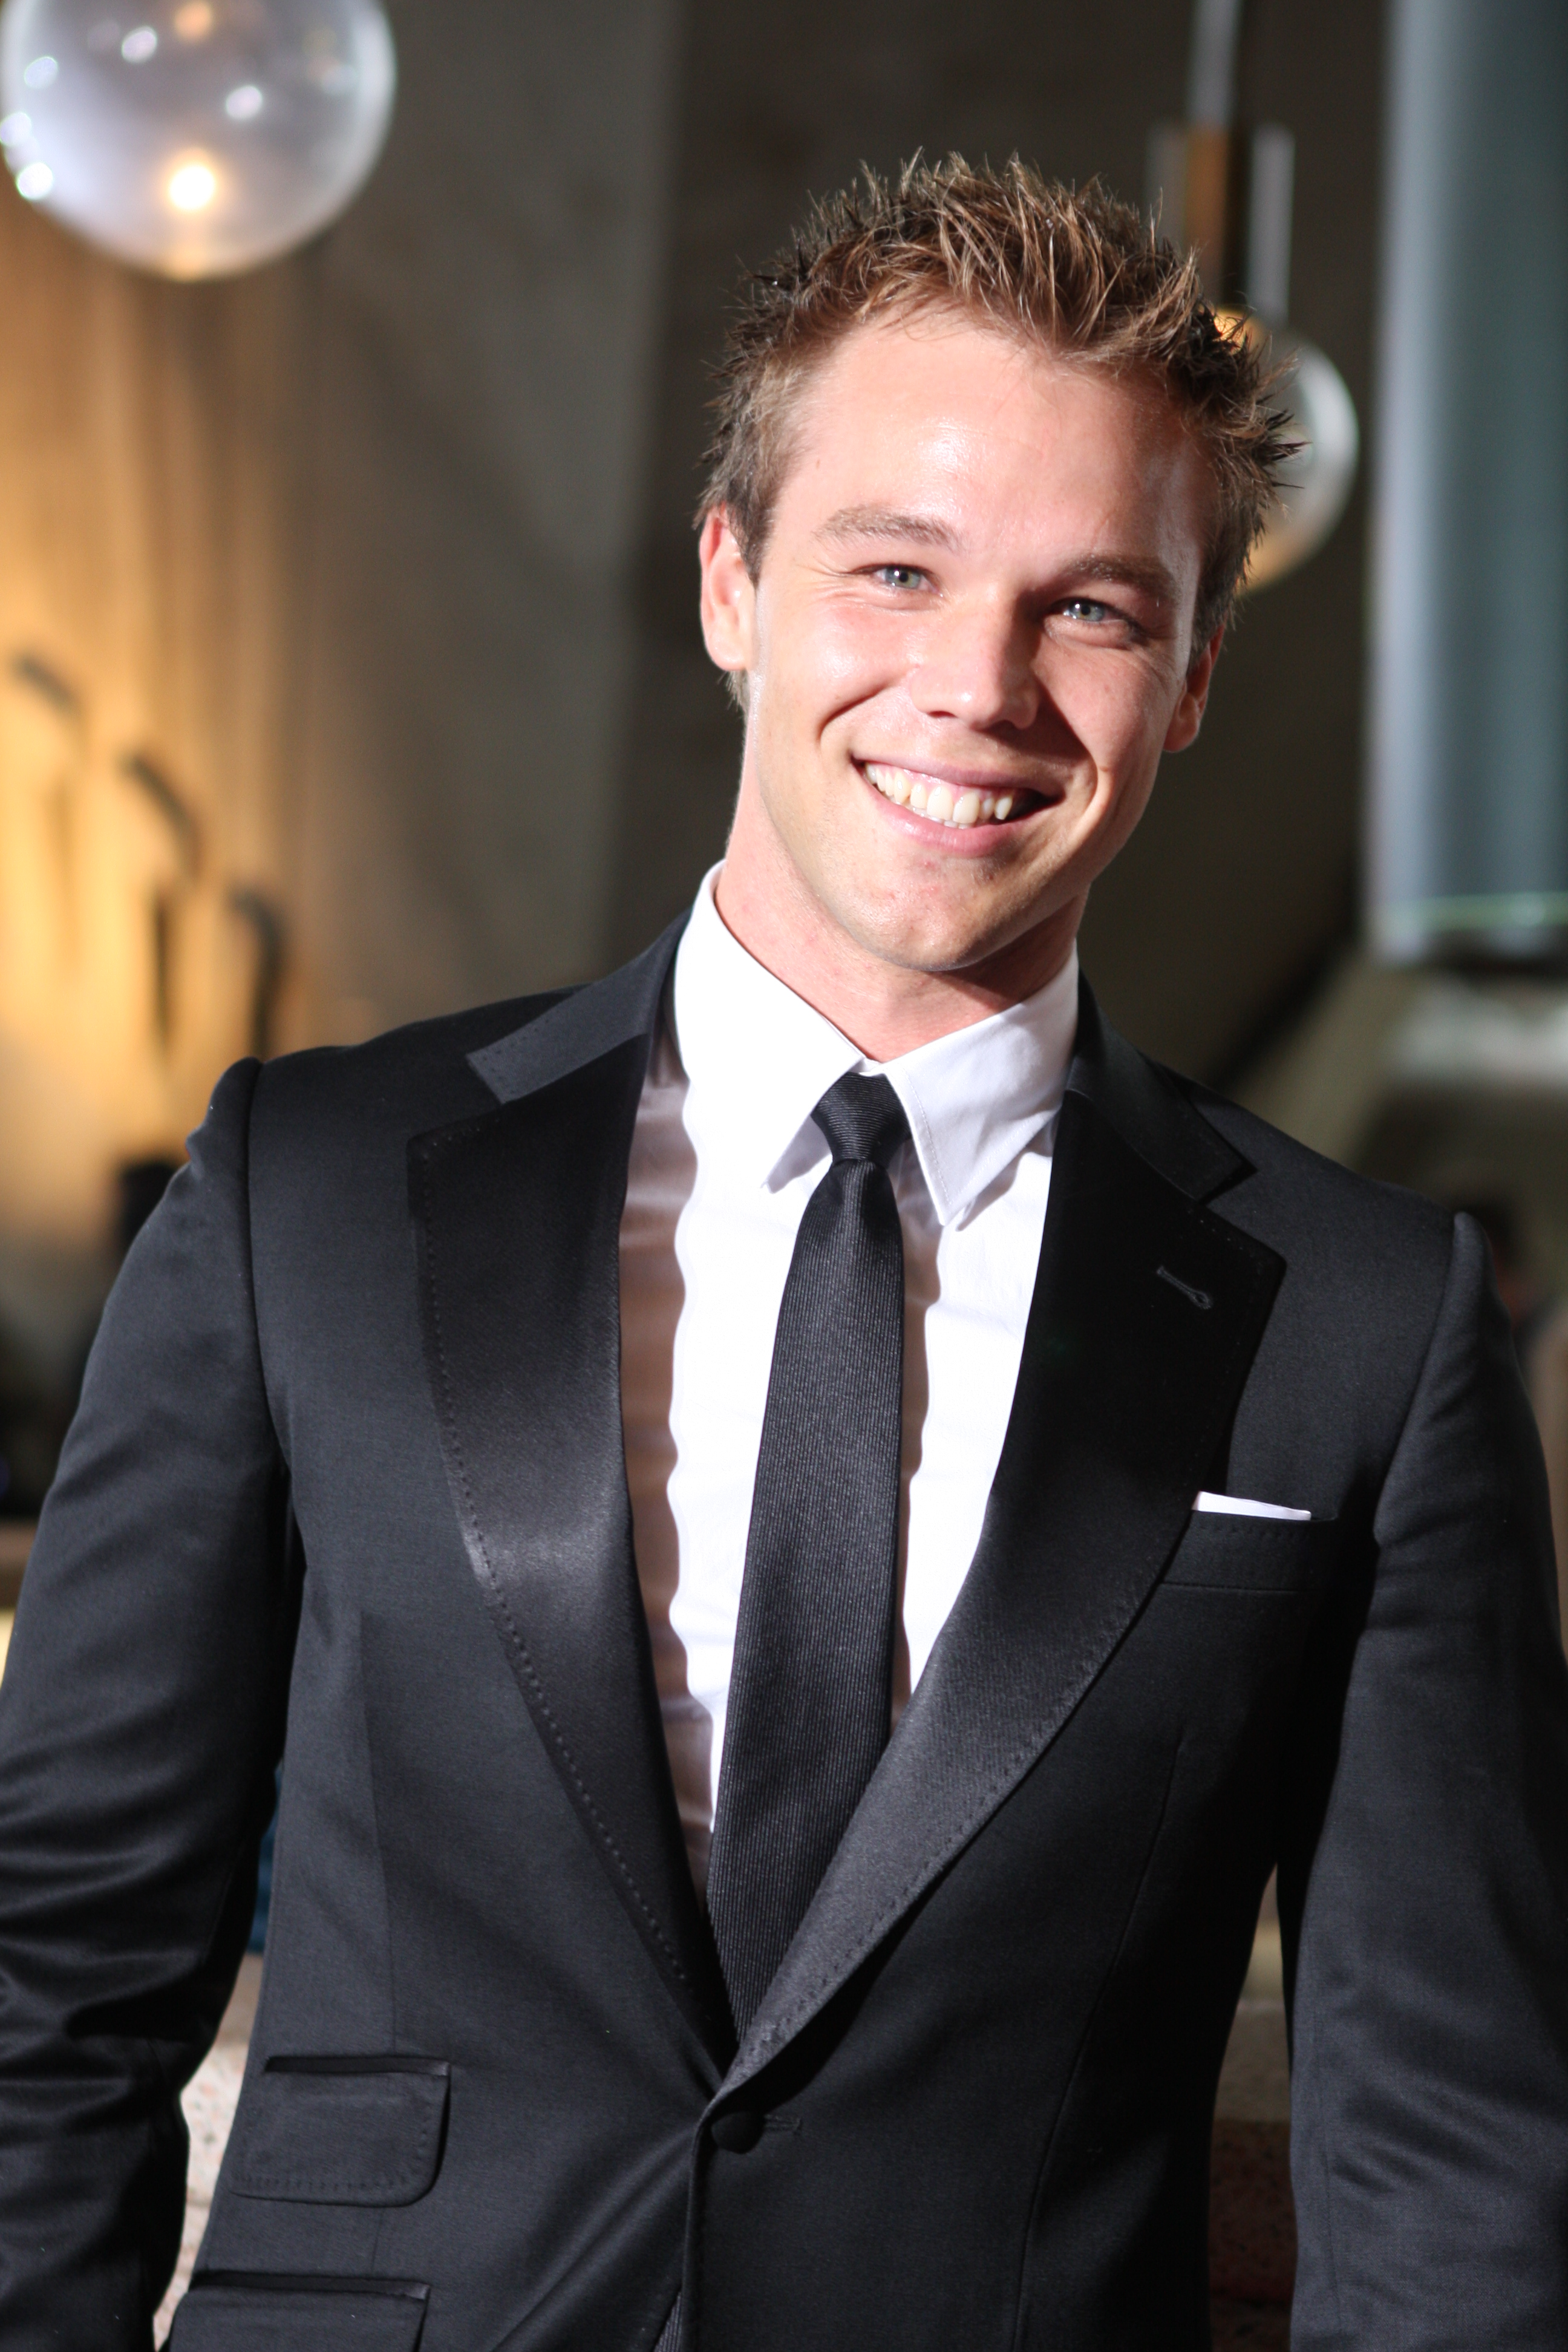 lincoln lewis - photo #4